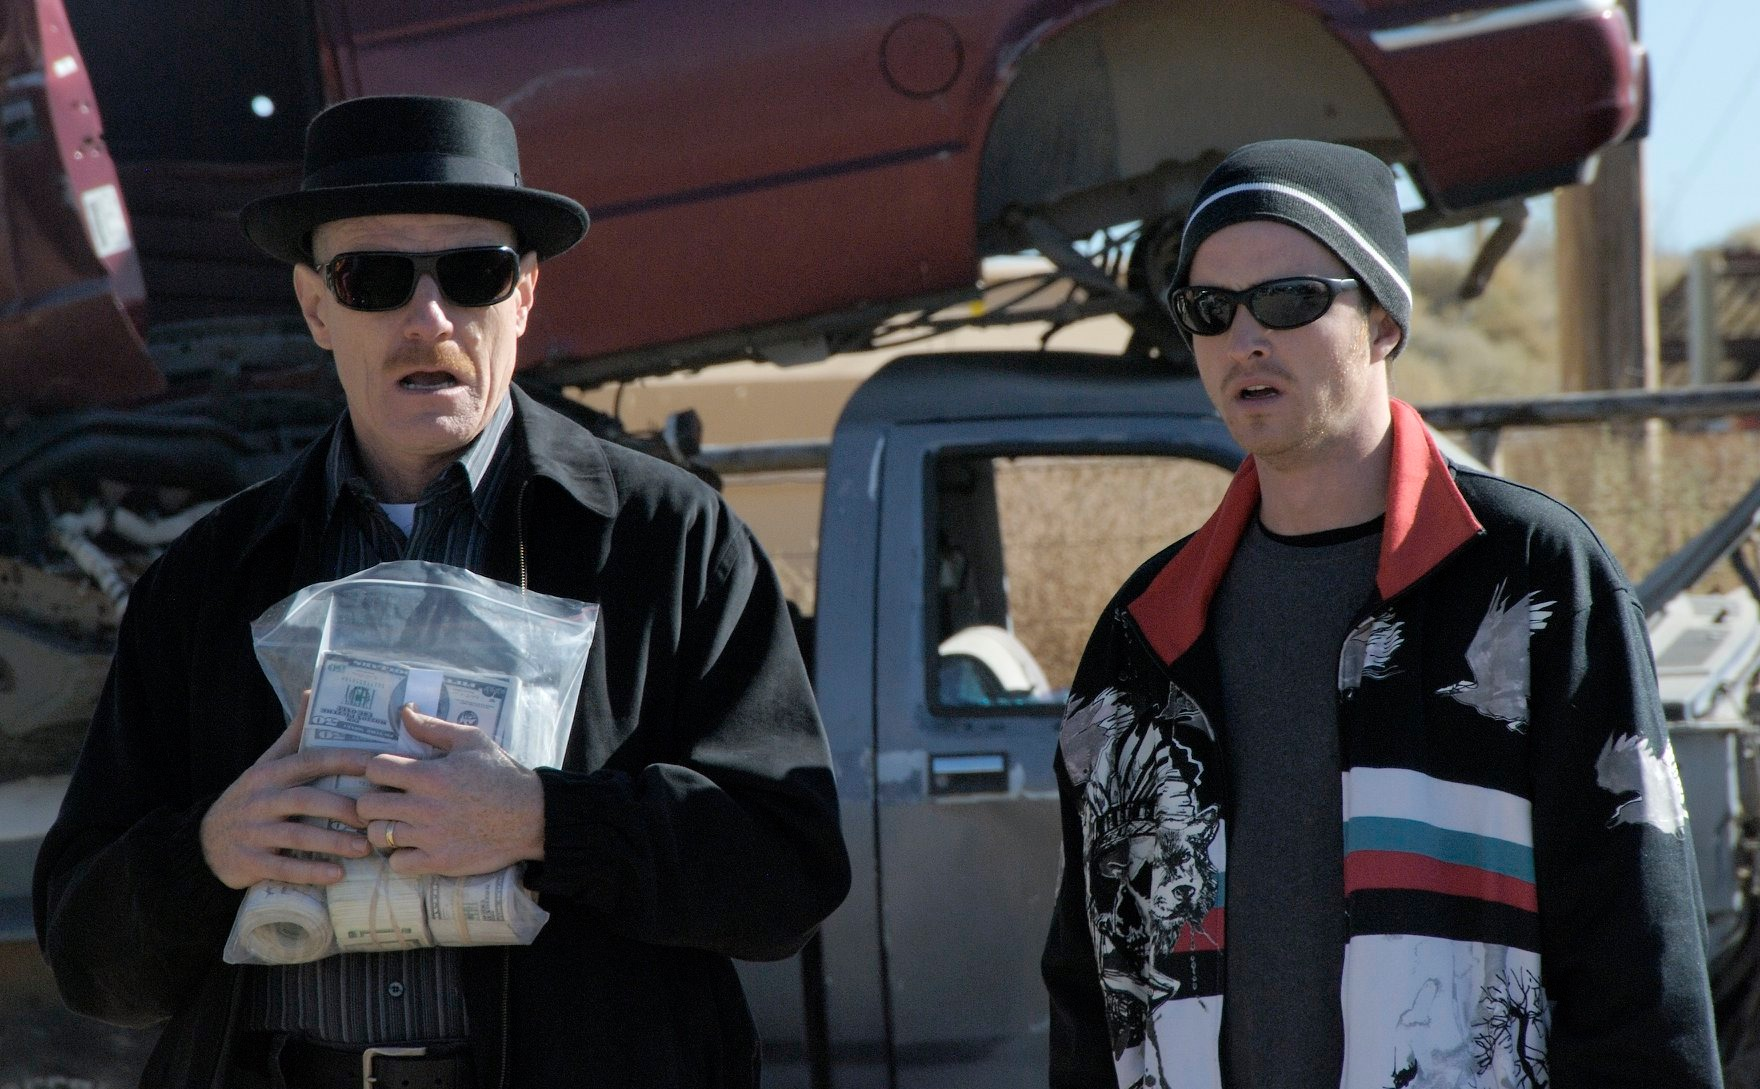 Bryan Cranston, portraying Walter White, stands on the left holding a plastic bag full of cash. Aaron Paul, portraying Jesse Pinkman, stands to the right, wearing a black, red, and white jacket.